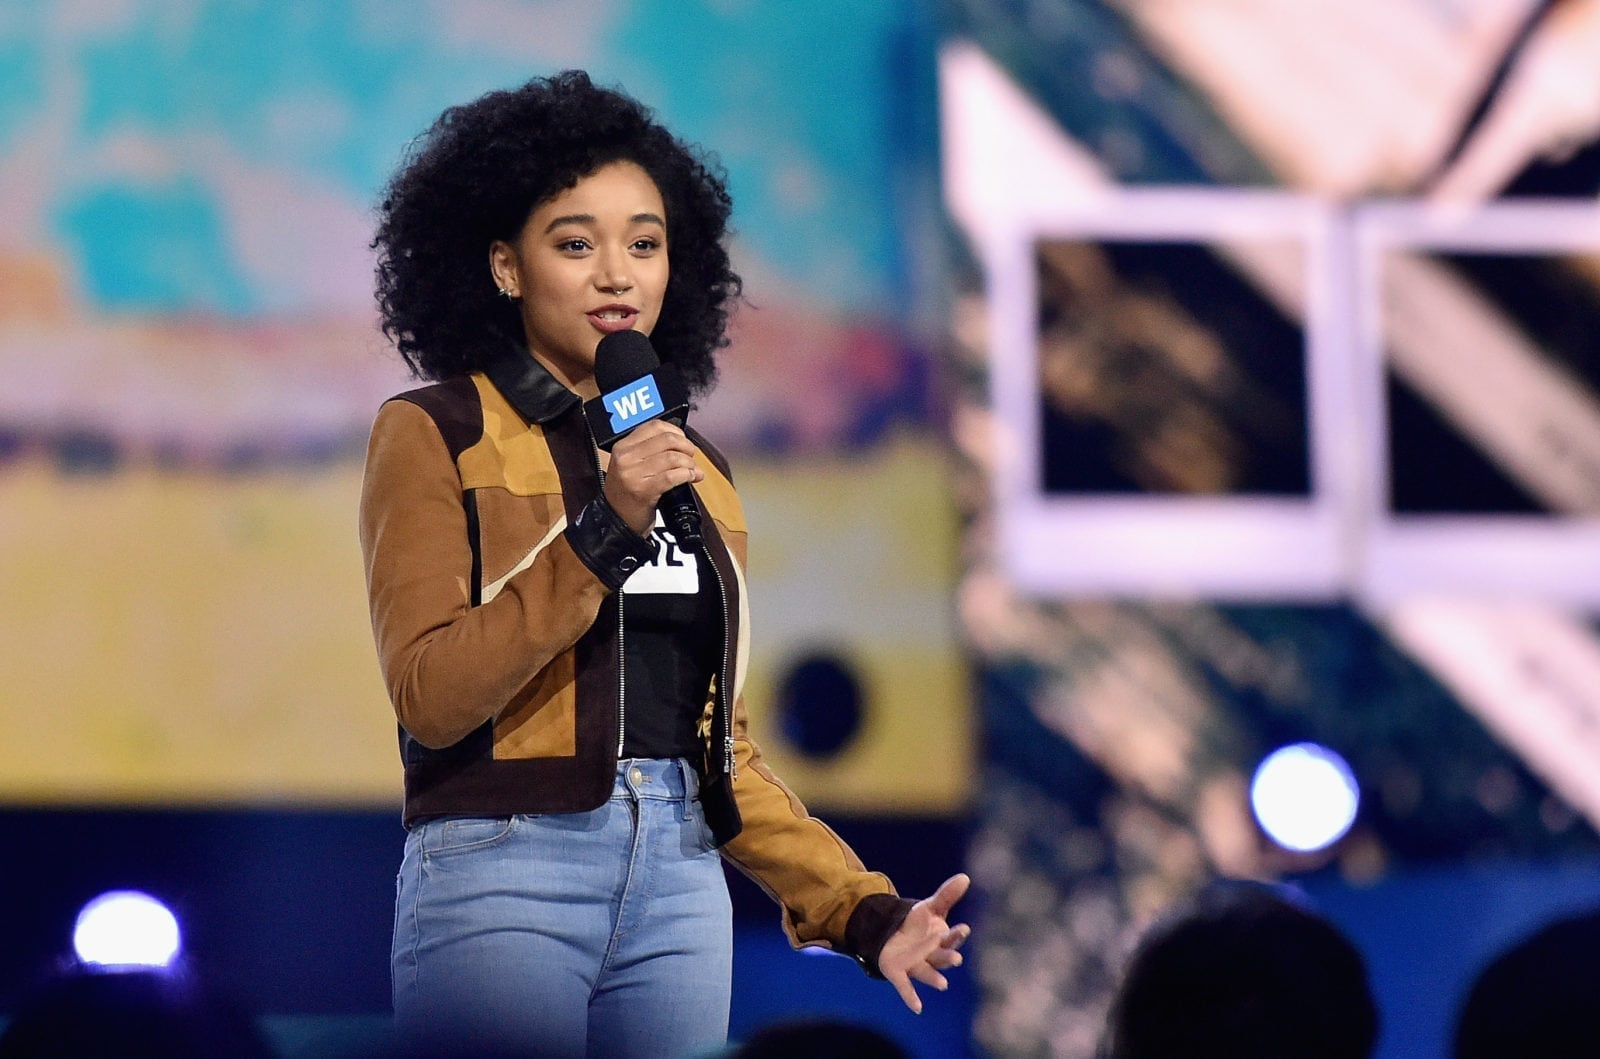 INGLEWOOD, CA - APRIL 07: Actress Amandla Stenberg speaks onstage at WE Day California 2016 at The Forum on April 7, 2016 in Inglewood, California. (Photo by Mike Windle/Getty Images for WE Day )